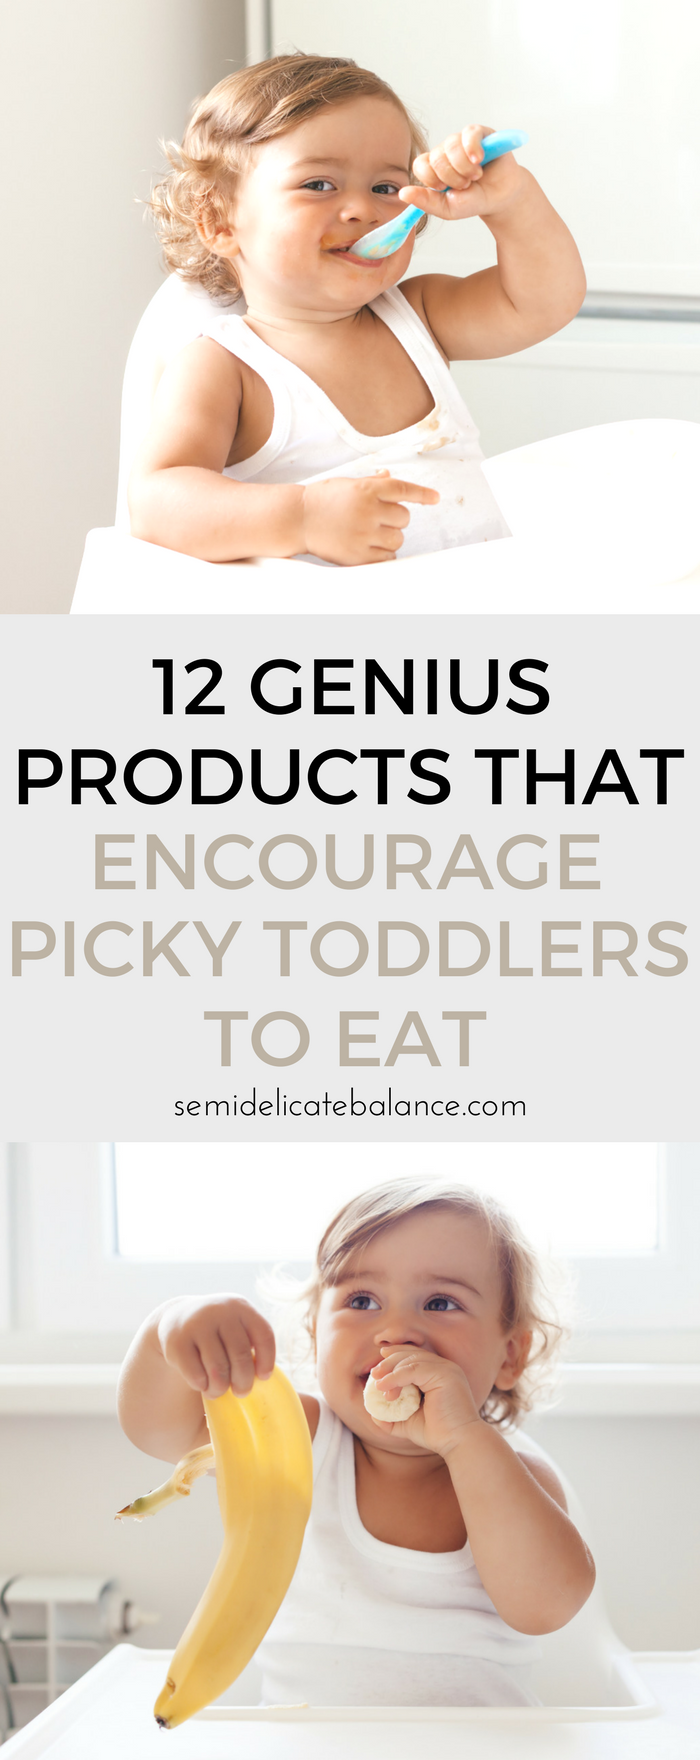 12 Genius Products That Encourage Picky Toddlers to Eat, new mom, parenting, motherhood